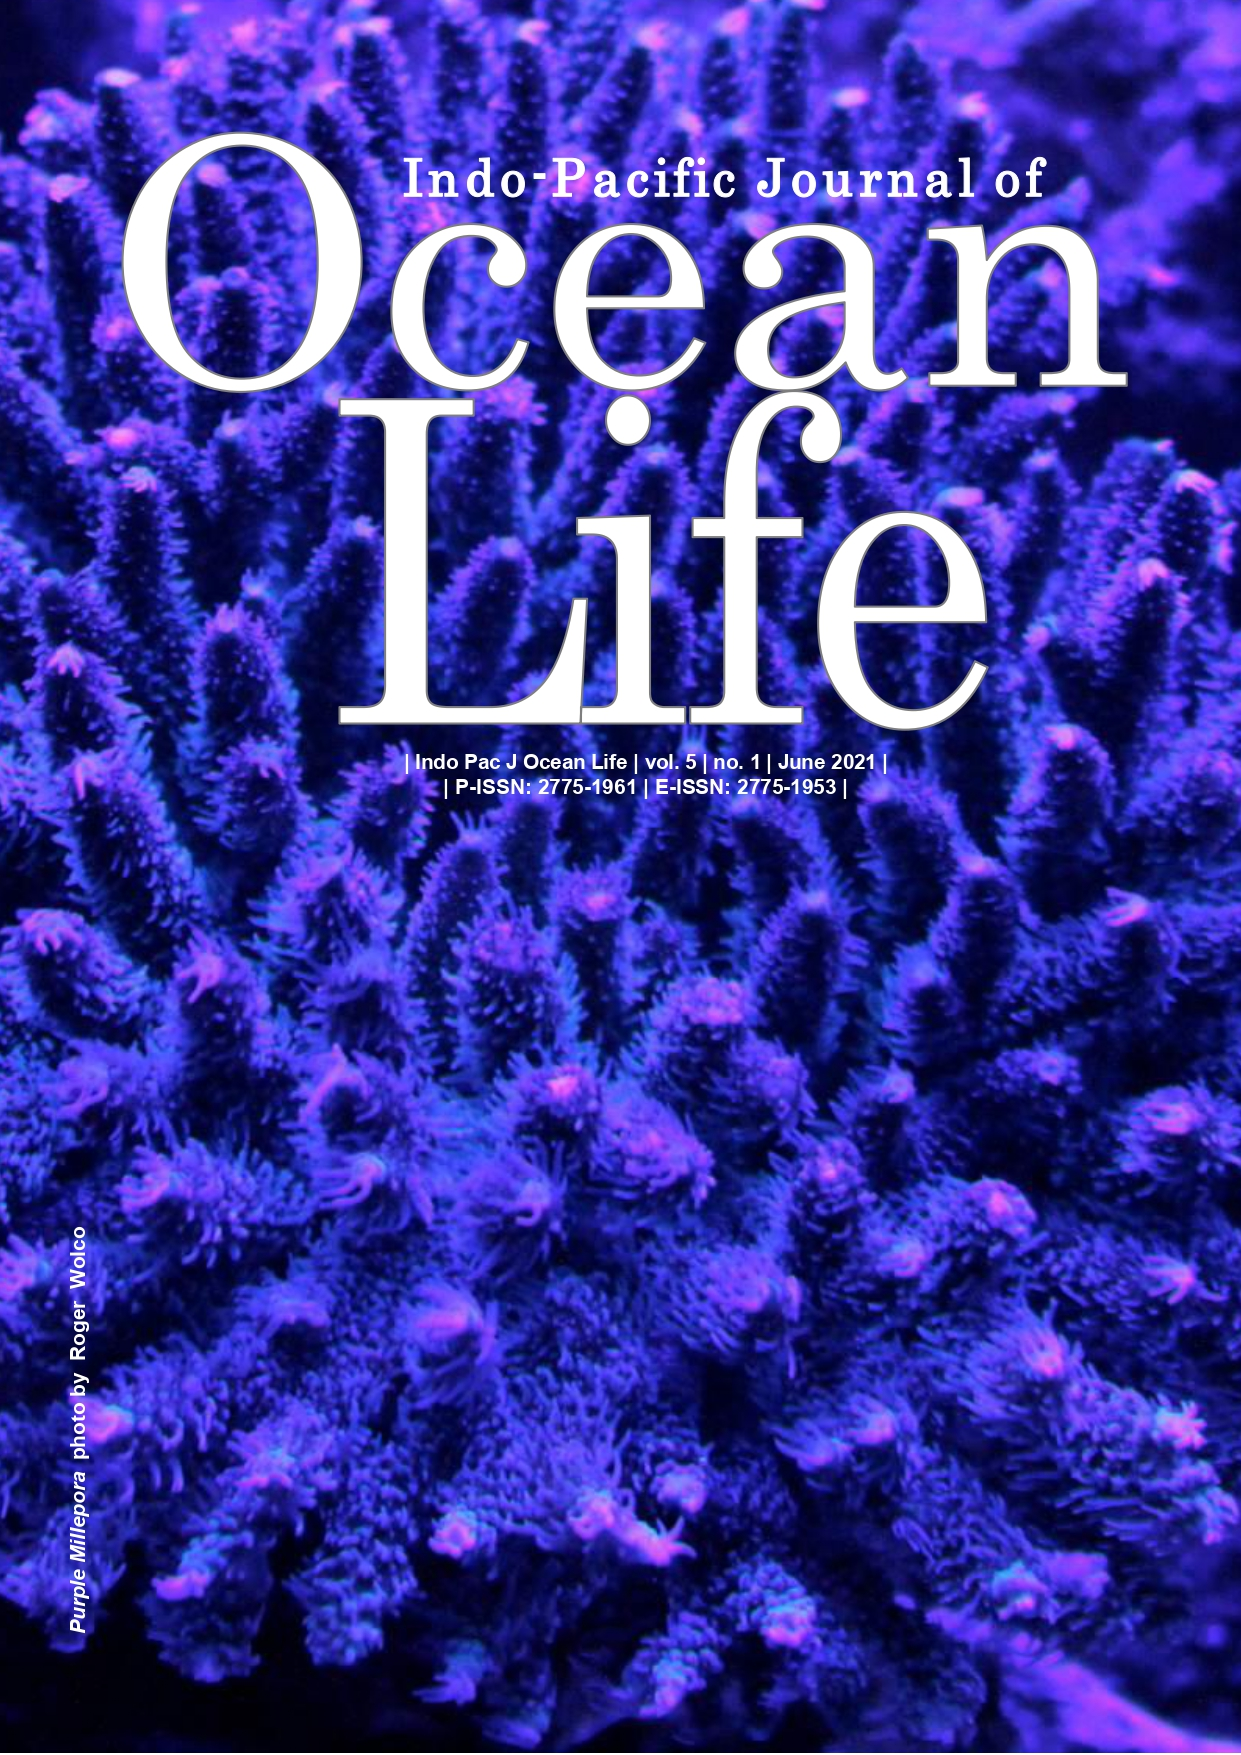 Indo Pacific Journal of Ocean Life